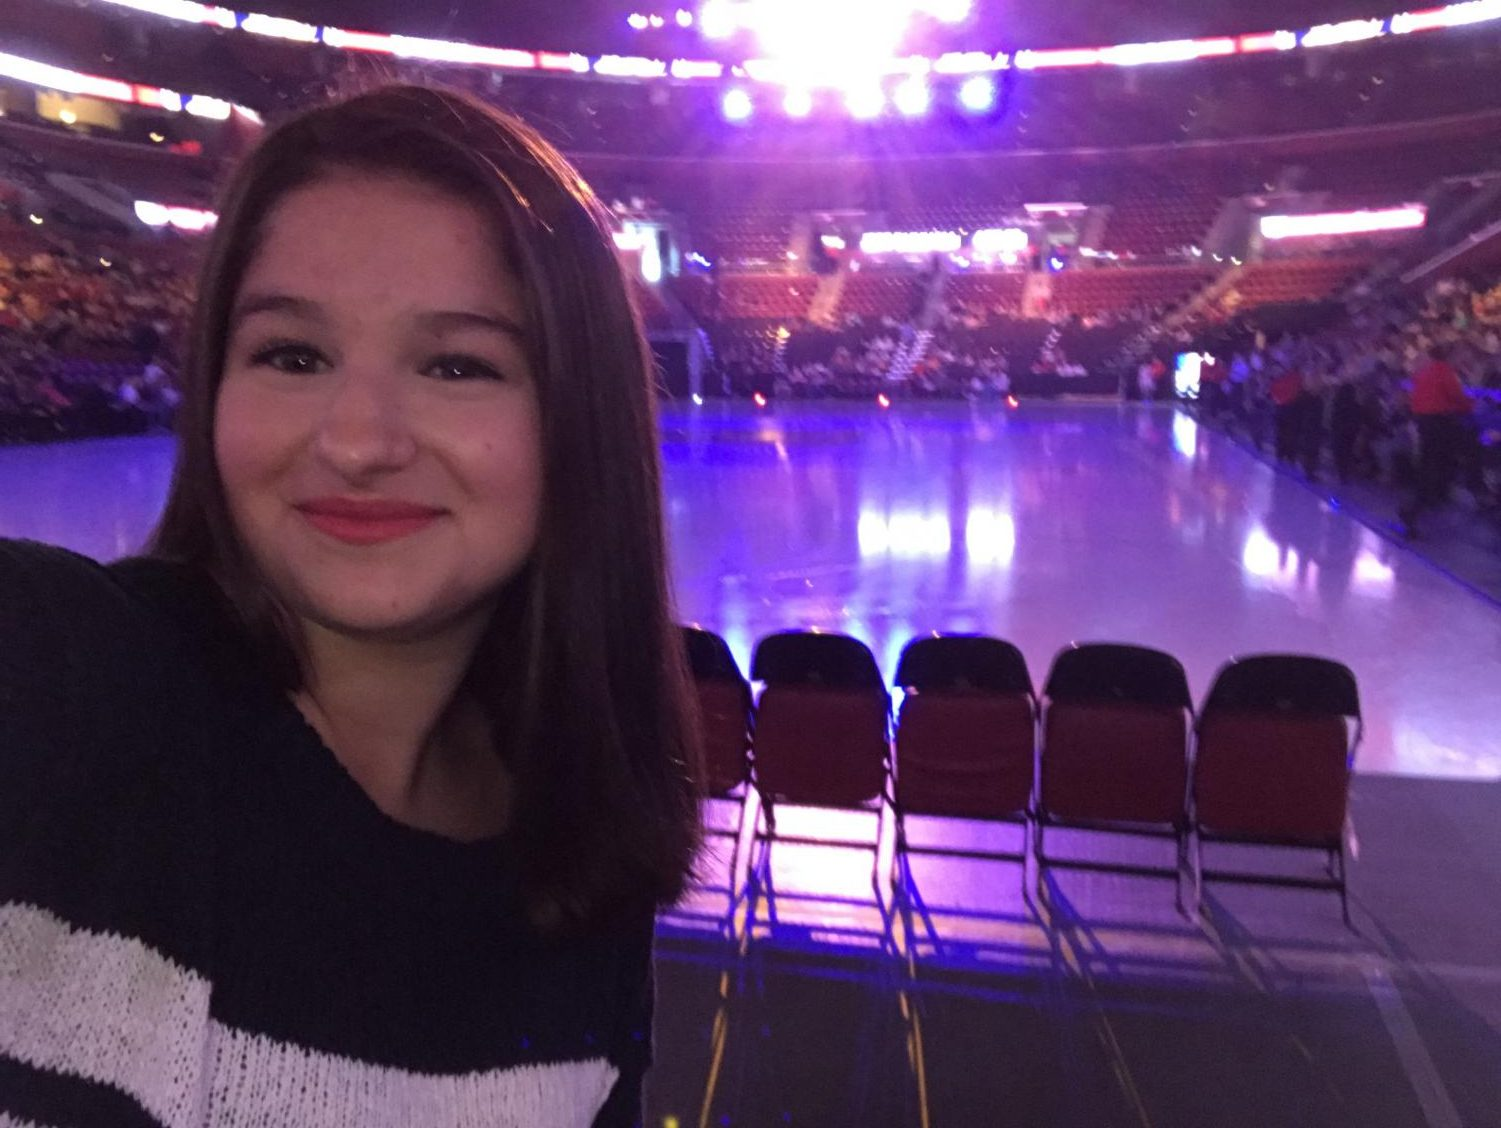 Luana Ghandour is watching the Stars On Ice figure skating show.